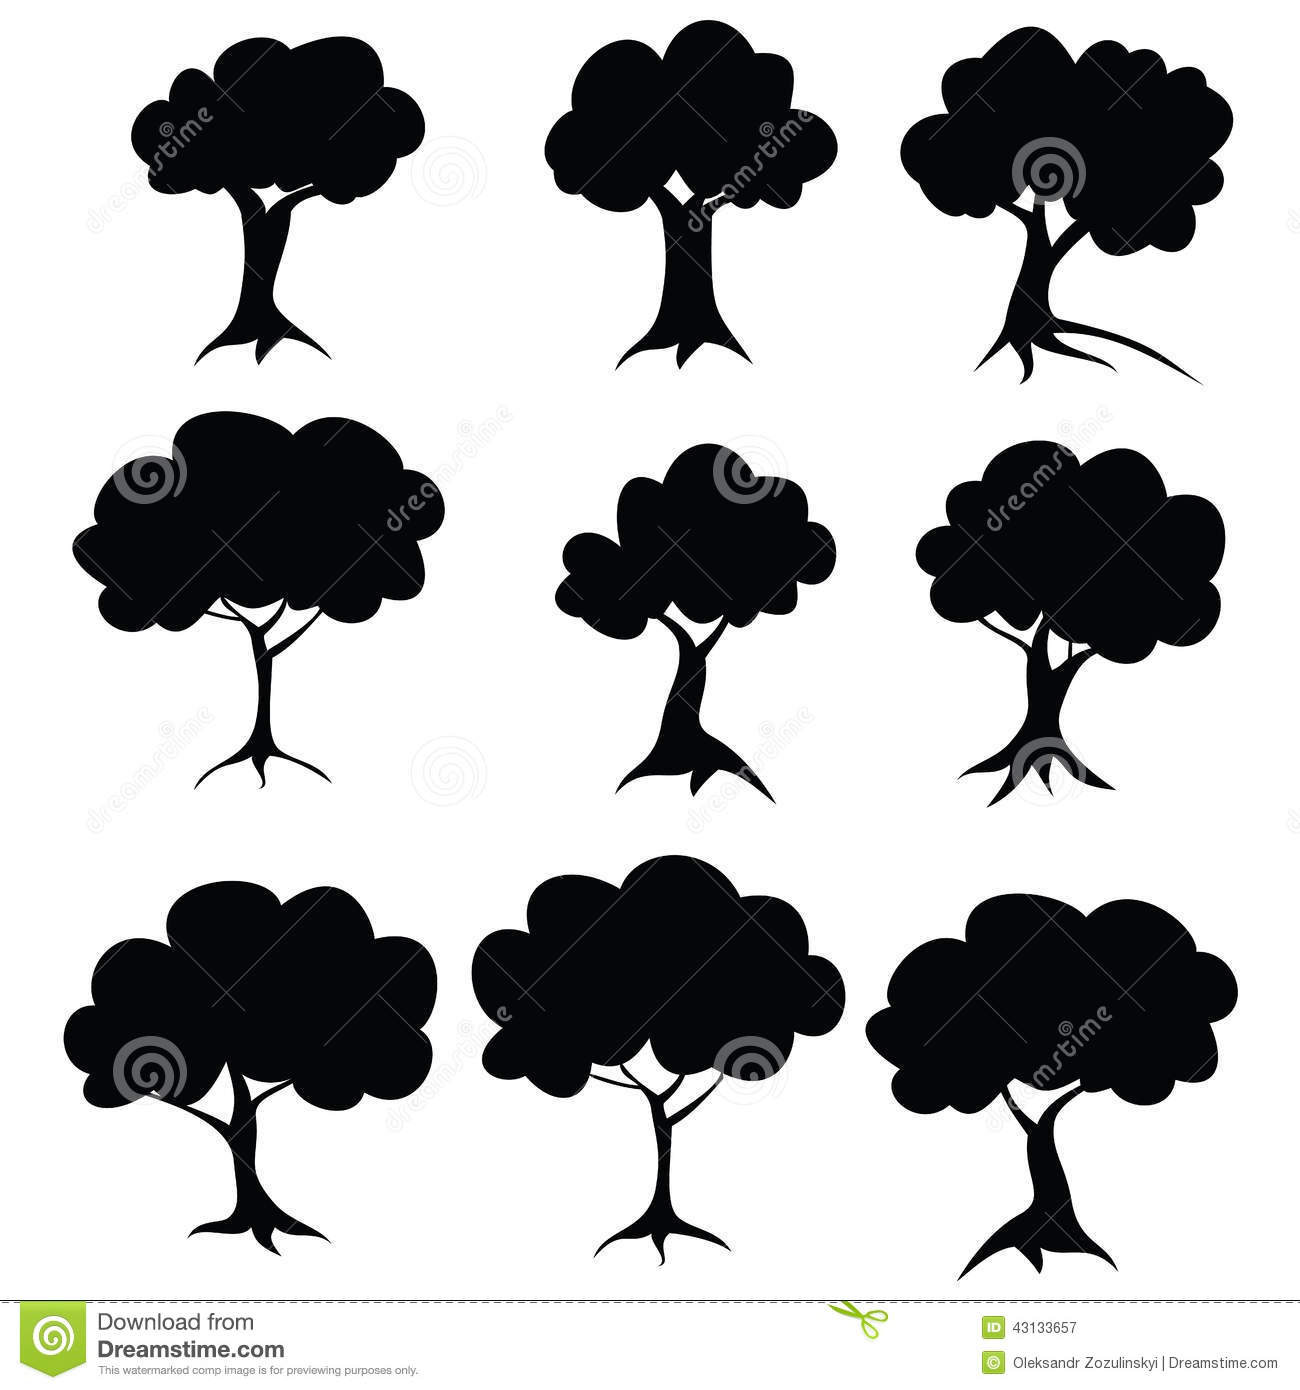 Arbres de pochoir trame 1 1 illustration stock image for Pochoir arbre